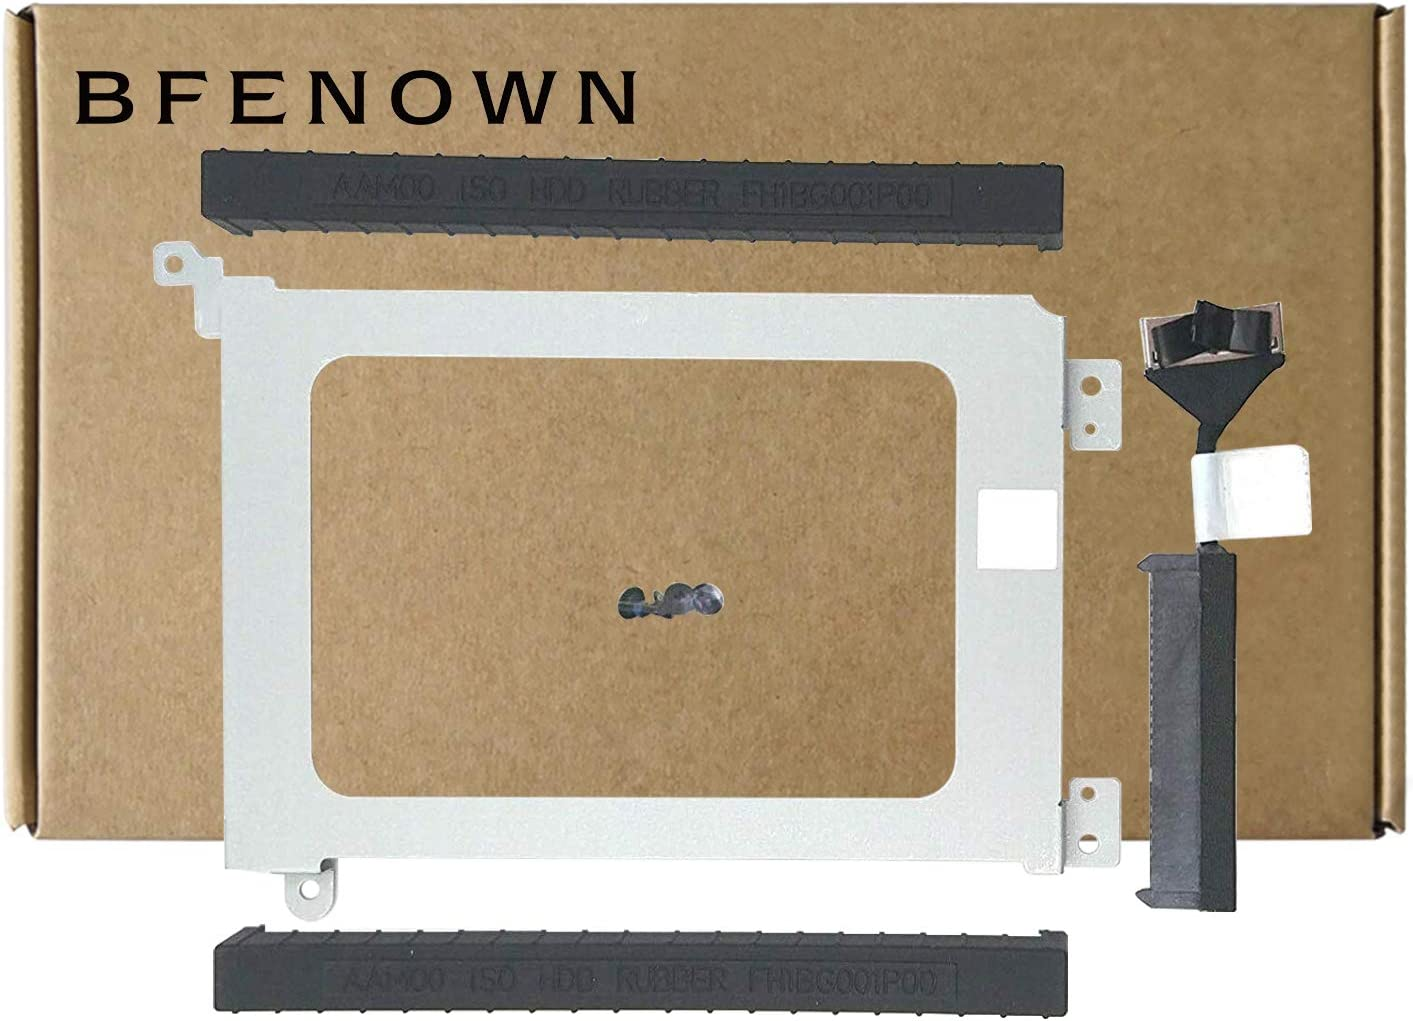 Bfenown HDD Hard Disk Drive Bracket Caddy 3FDY3 with Grommet Rubber Rail 3XYT5 and HDD Connector Cable XDYGX for Dell XPS 15 9550 9570 9650 7590 9560 Precision 5510 5520 5530 5540 (4 Screws Included)